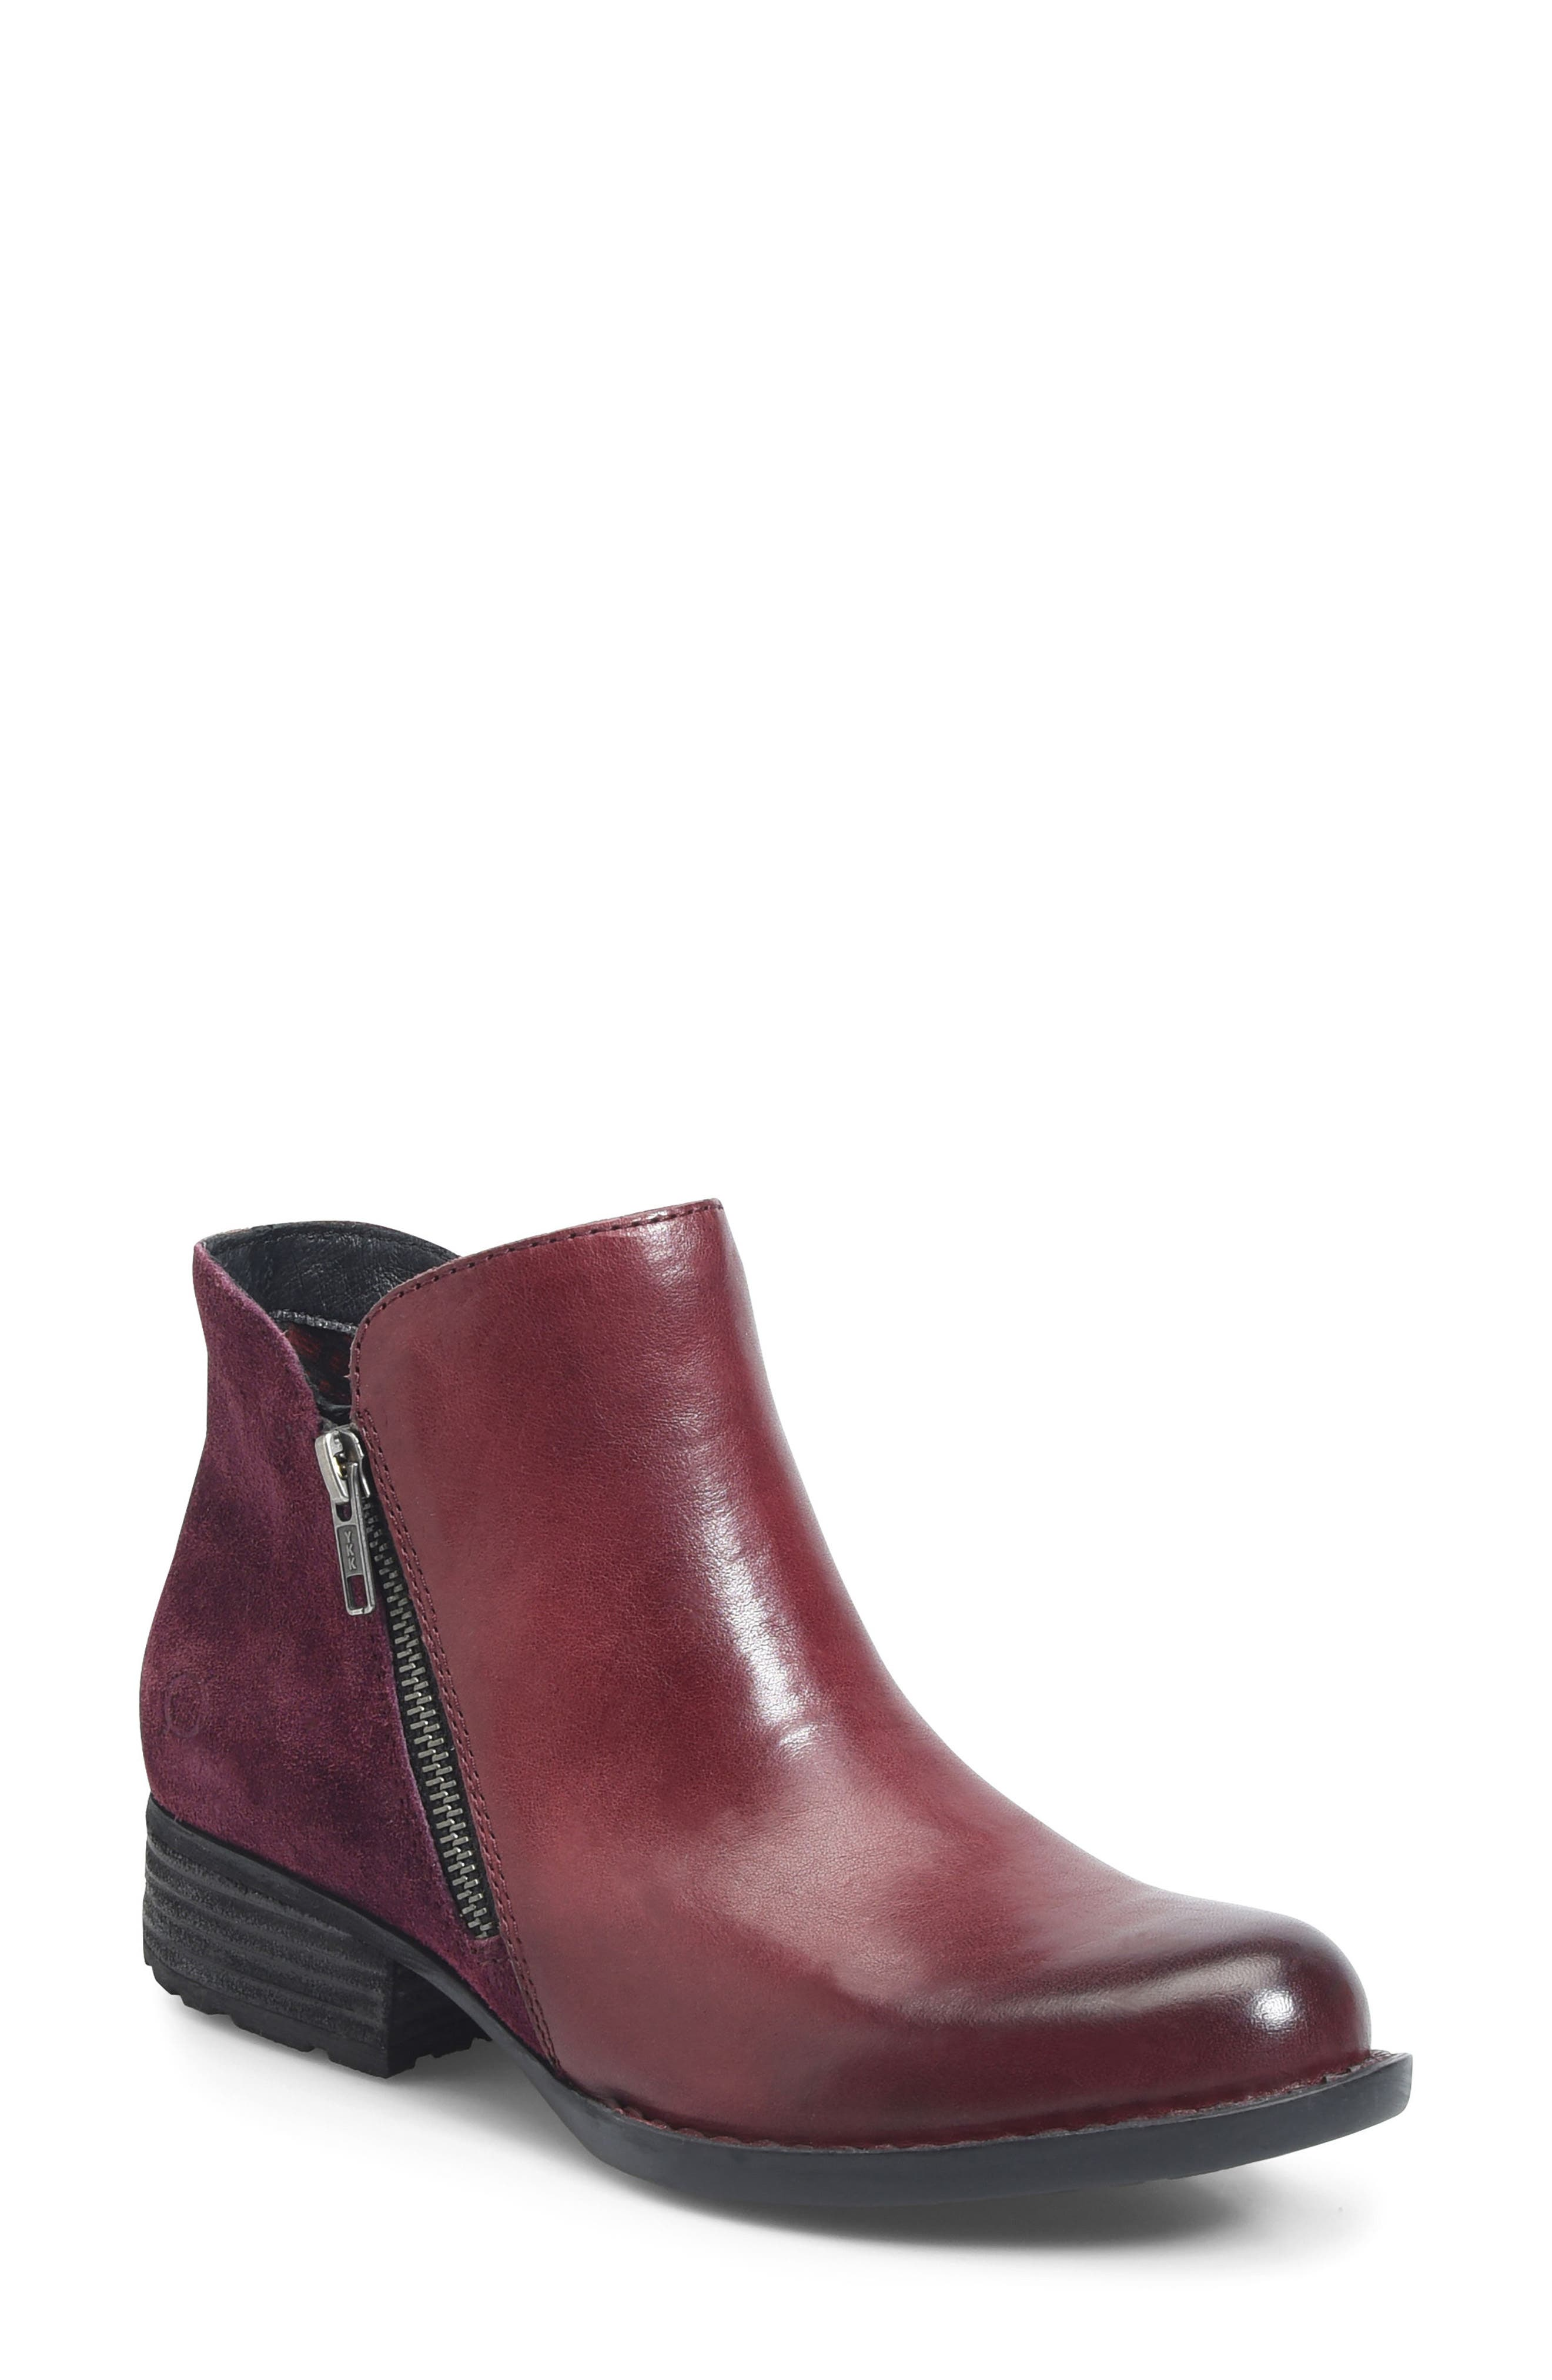 Keefe Bootie,                             Main thumbnail 1, color,                             Burgundy/ Purple Combo